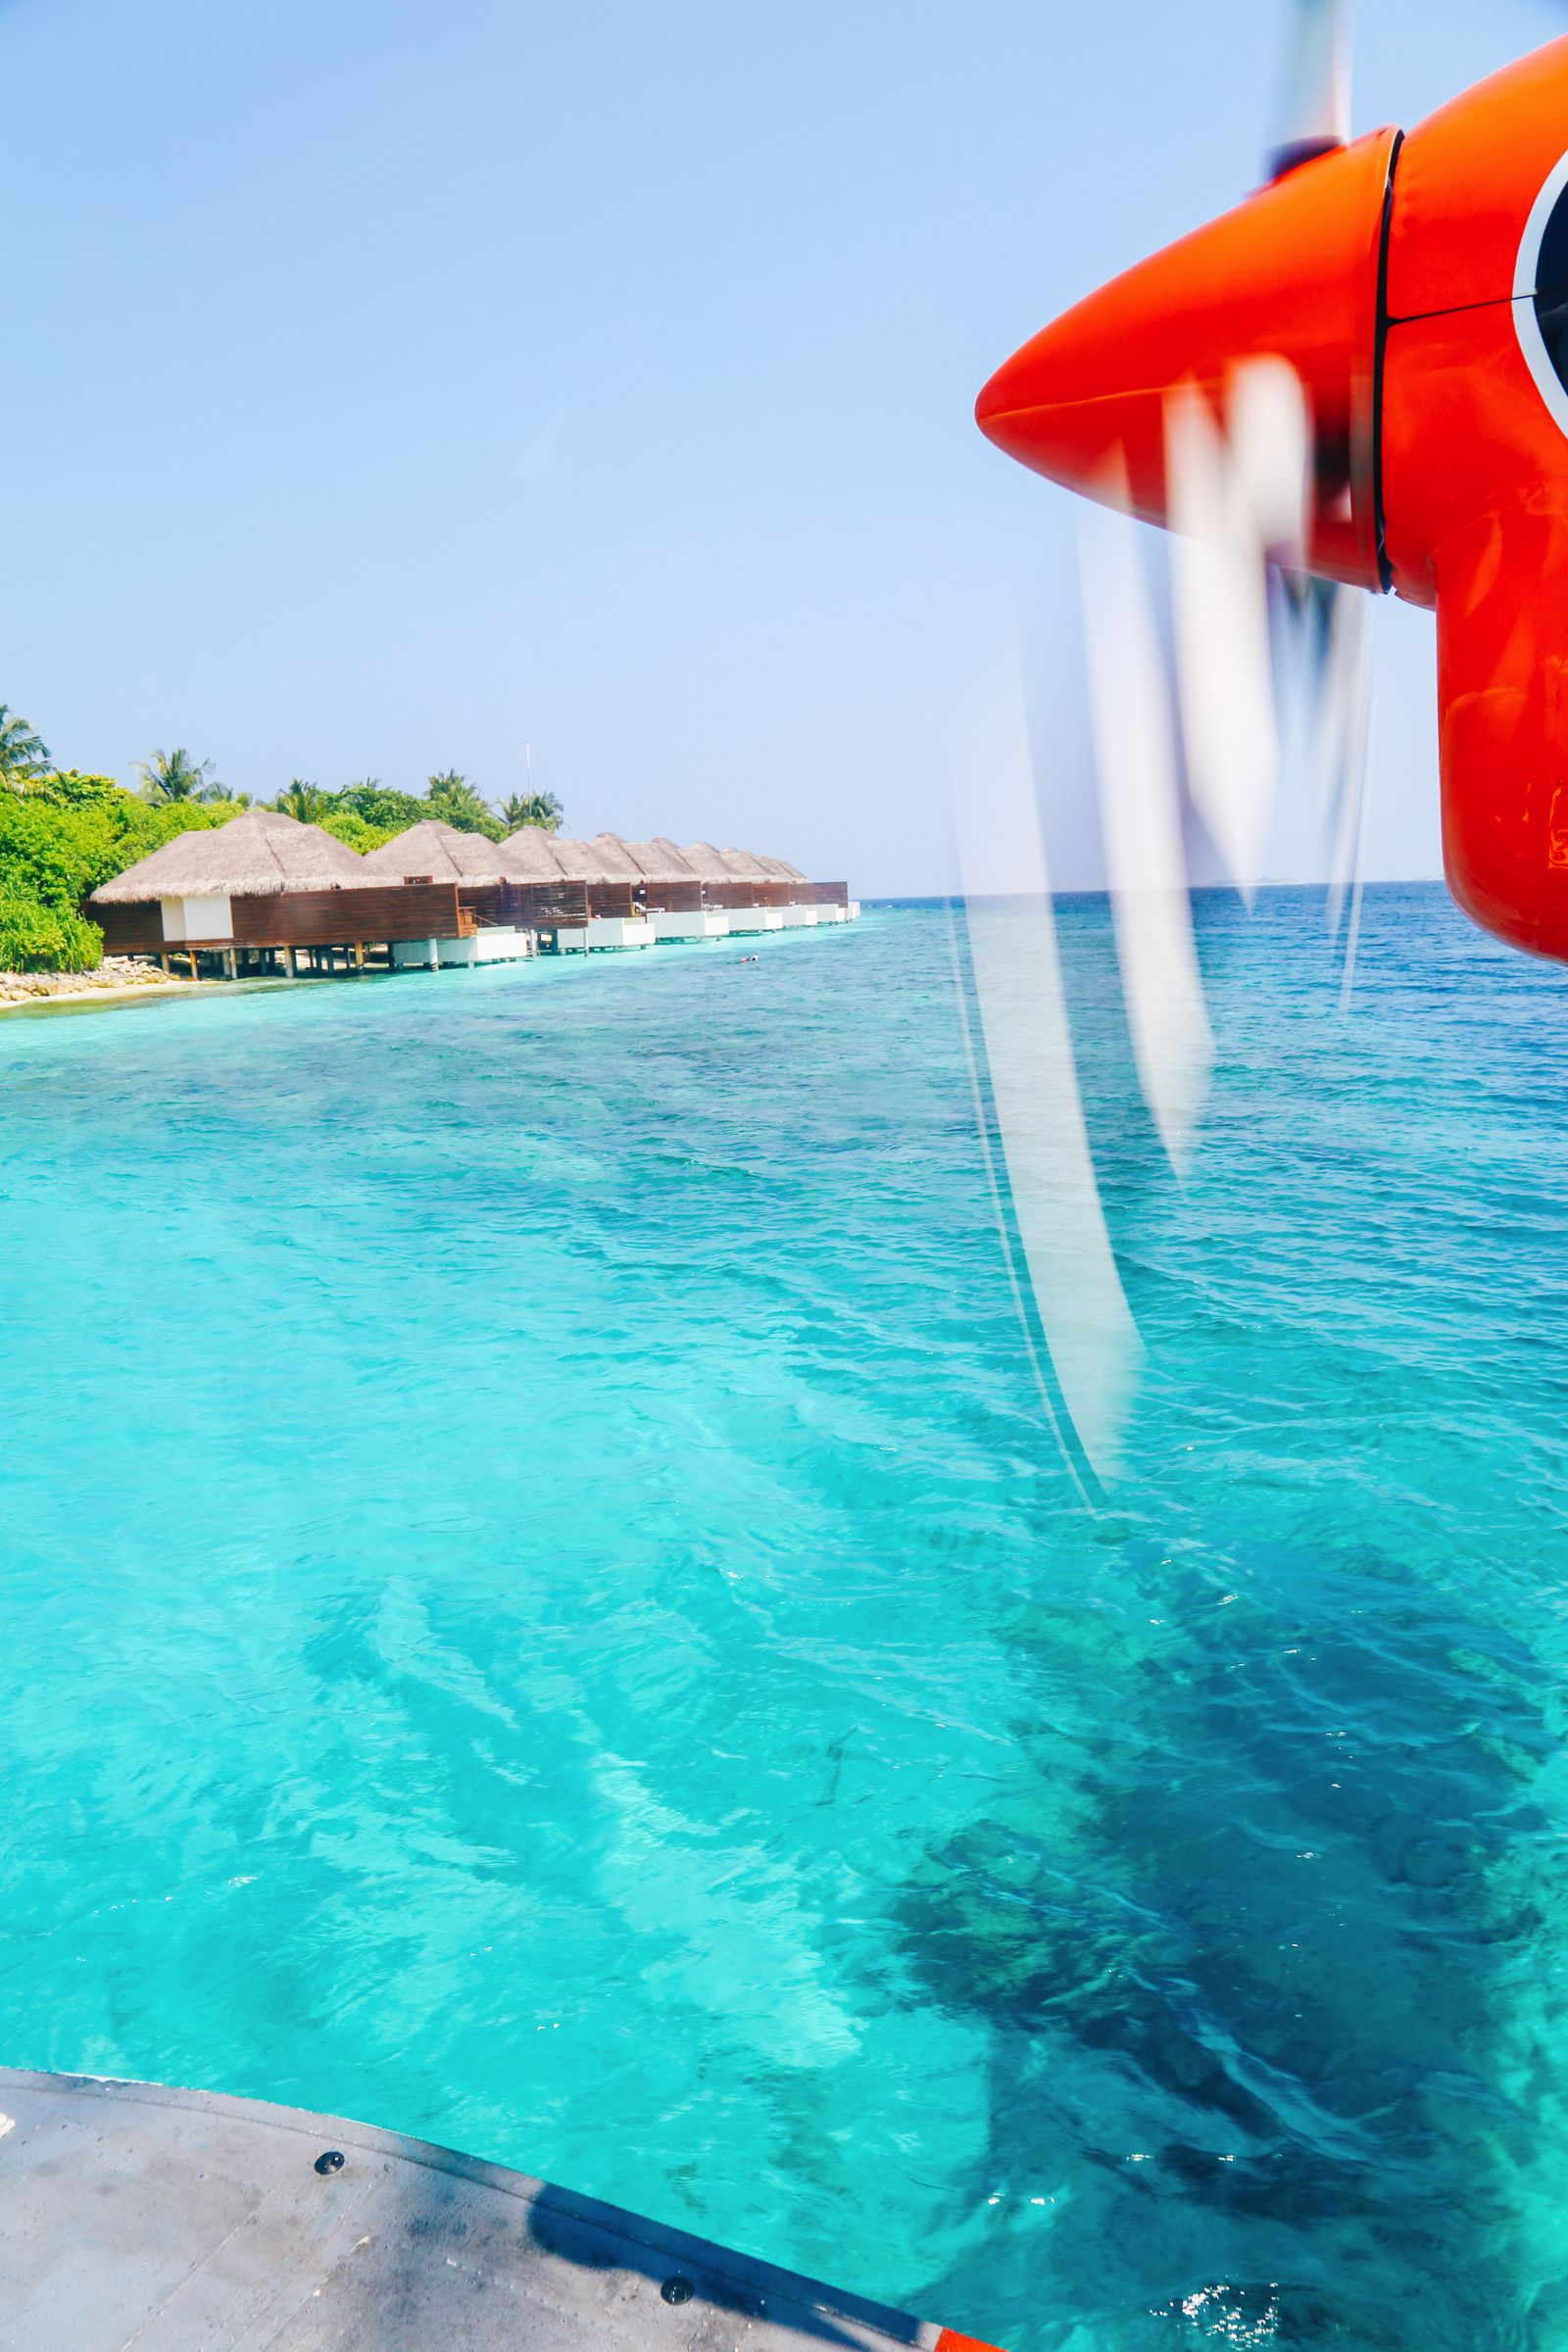 Arrival At The Dusit Thani In The Maldives! (10)